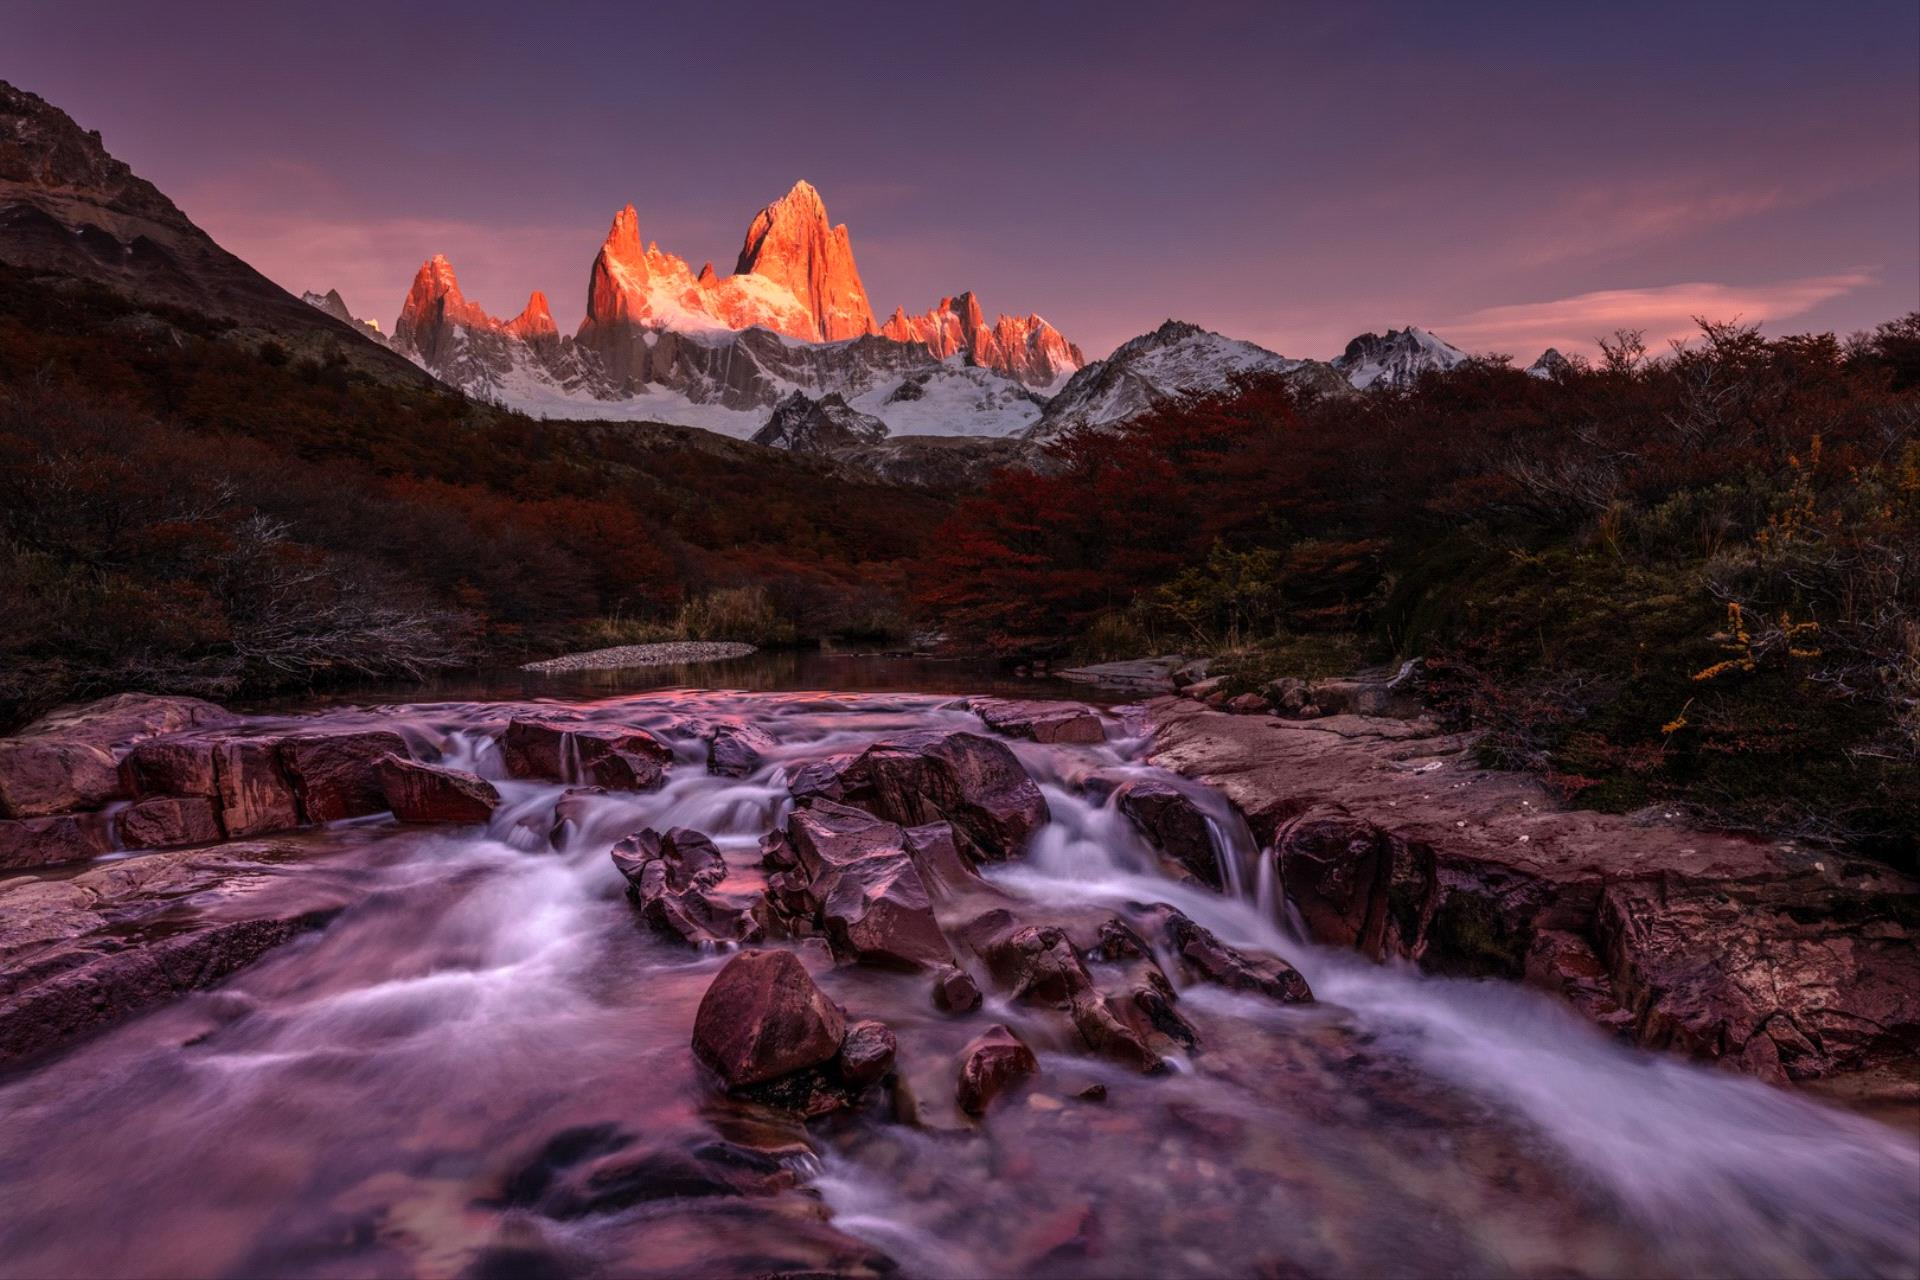 Golden Dragon Photo Award - Alexey Suloev (Russian Federation) - The First Rays-Fitz Roy